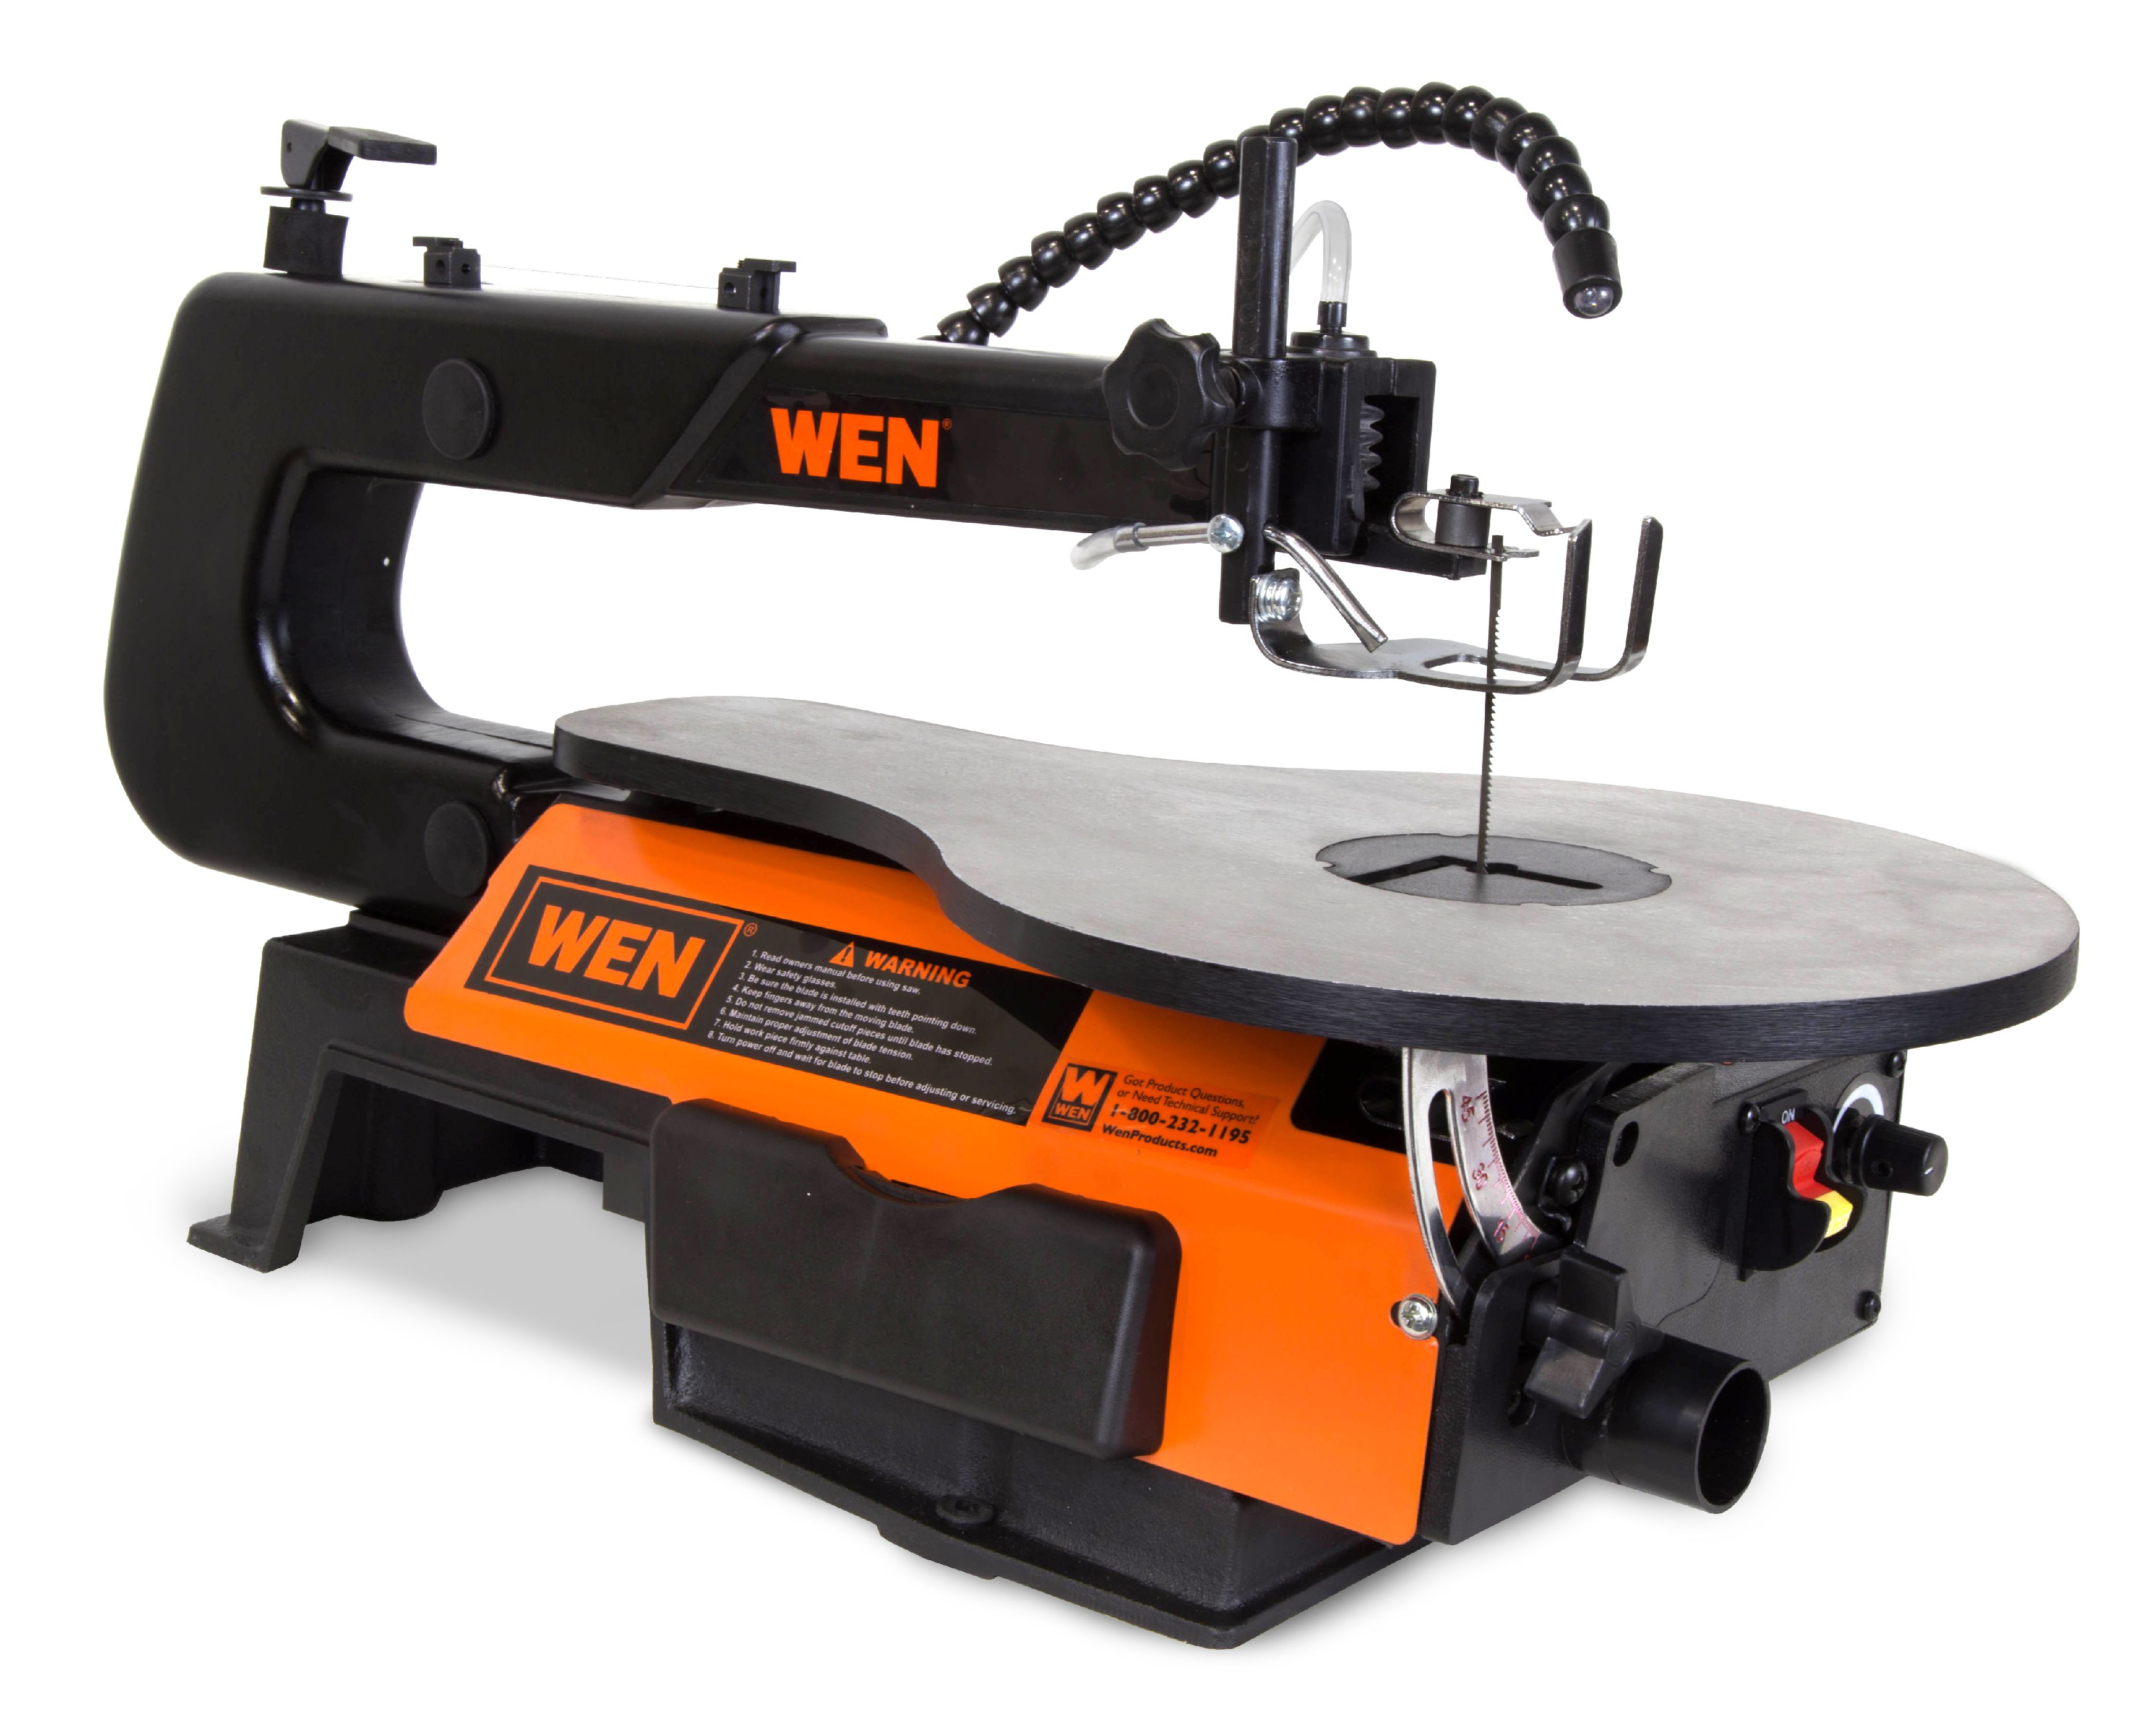 WEN 16-inch Two-Direction Variable Speed Scroll Saw, 3921 by WEN